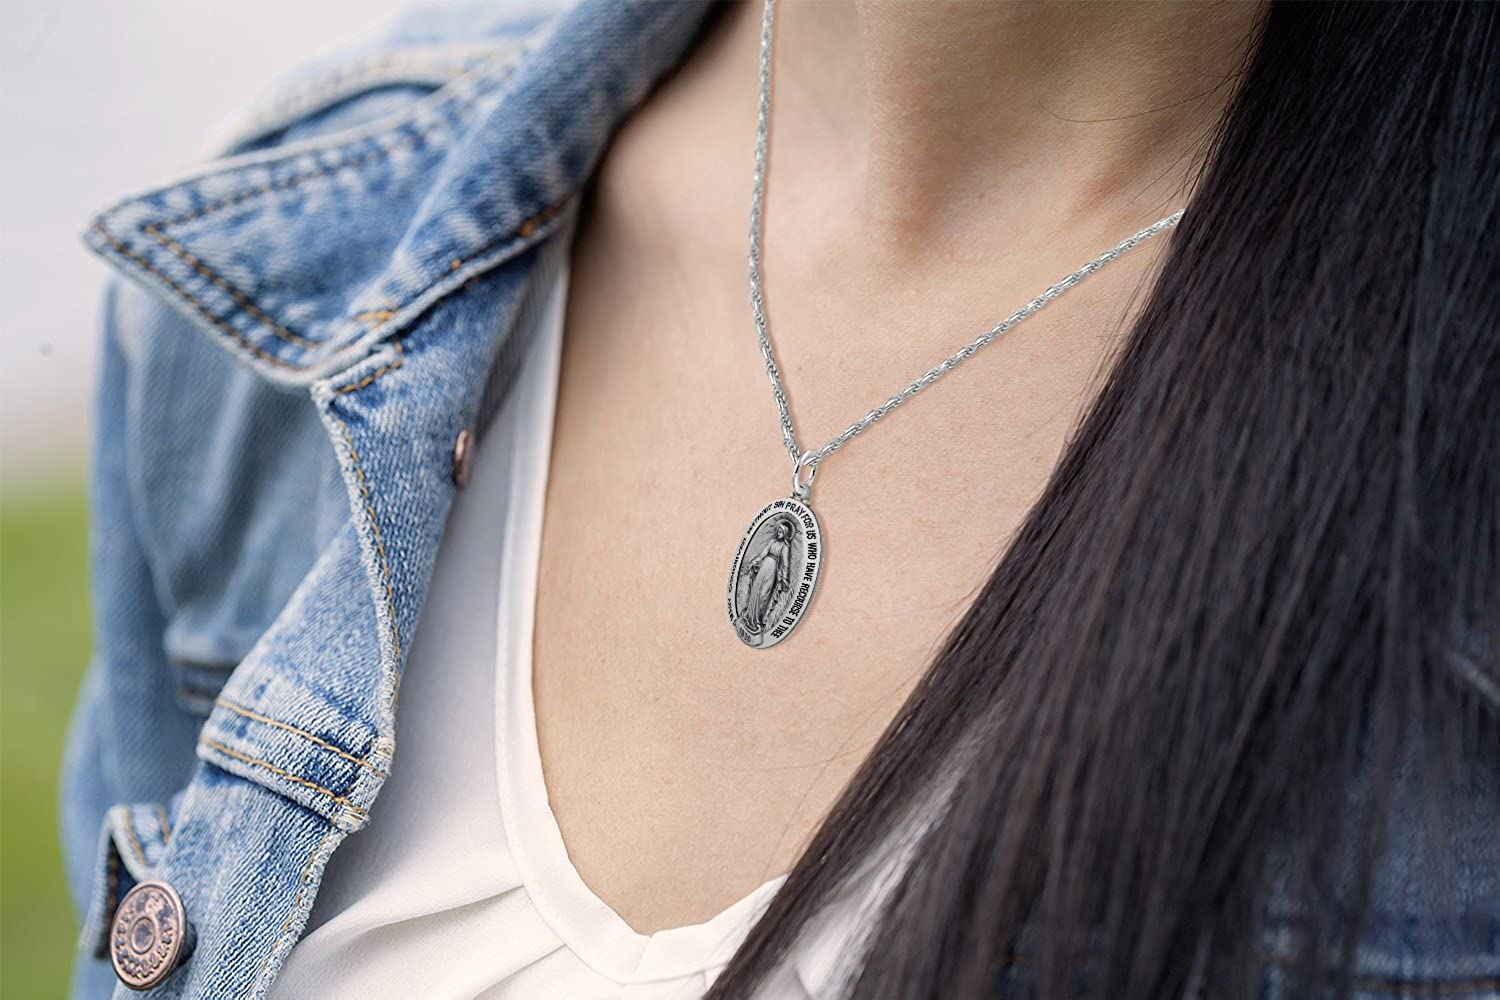 US Jewels And Gems New 0.925 Sterling Silver 0.8 Oval Miraculous Virgin Mary Antique Finish Pendant Necklace 18 to 24